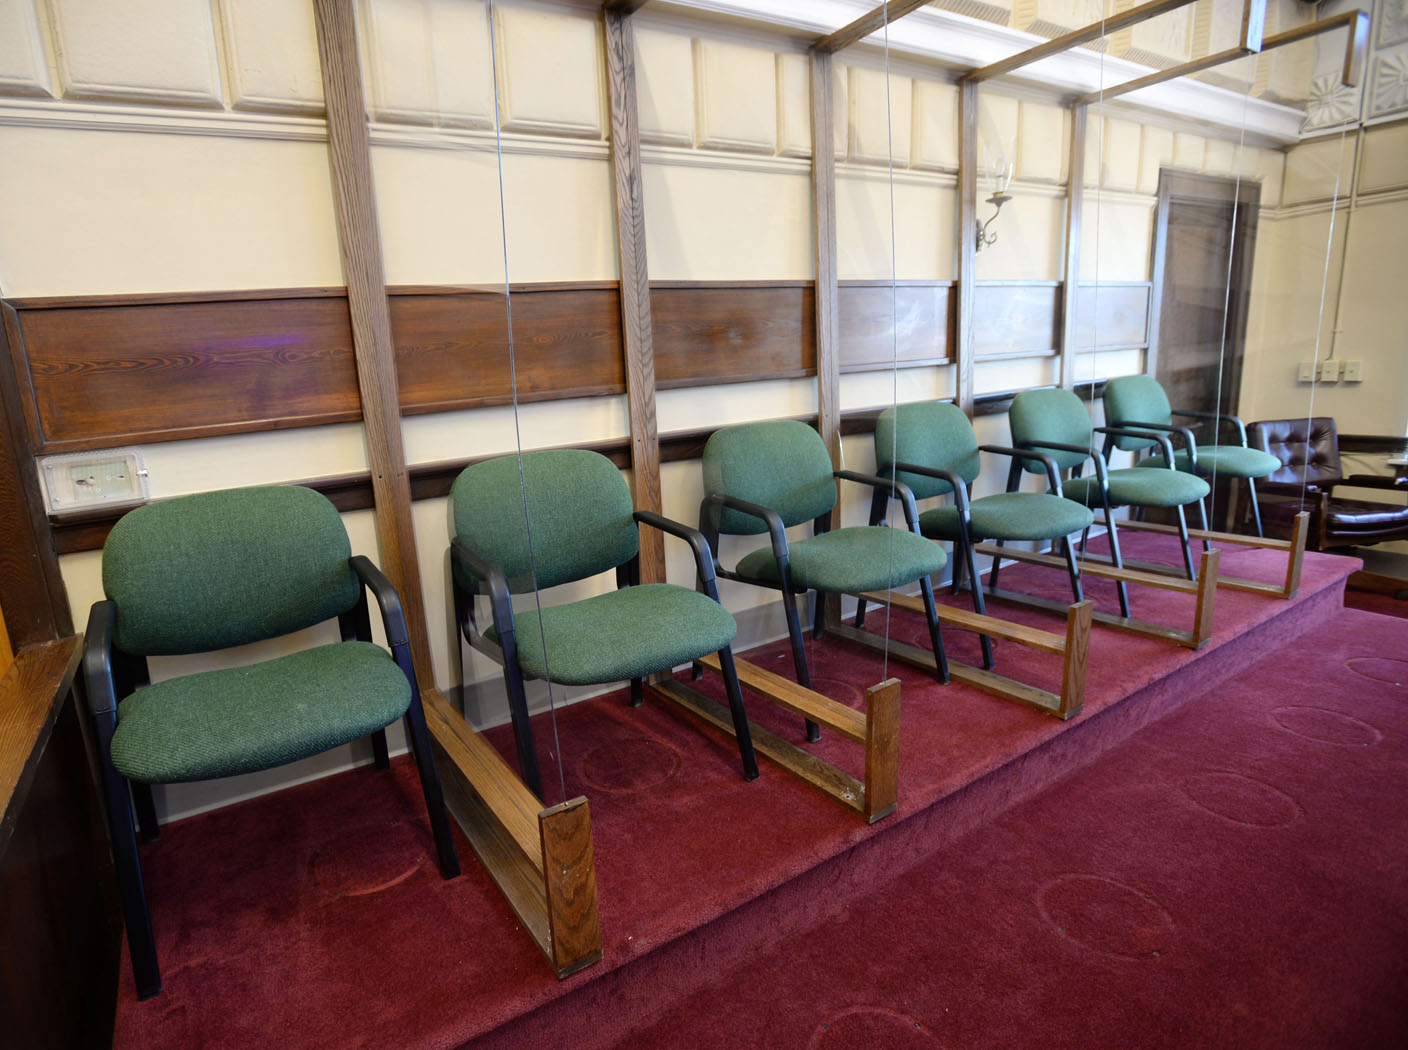 Benton County judges make changes to hold jury trials